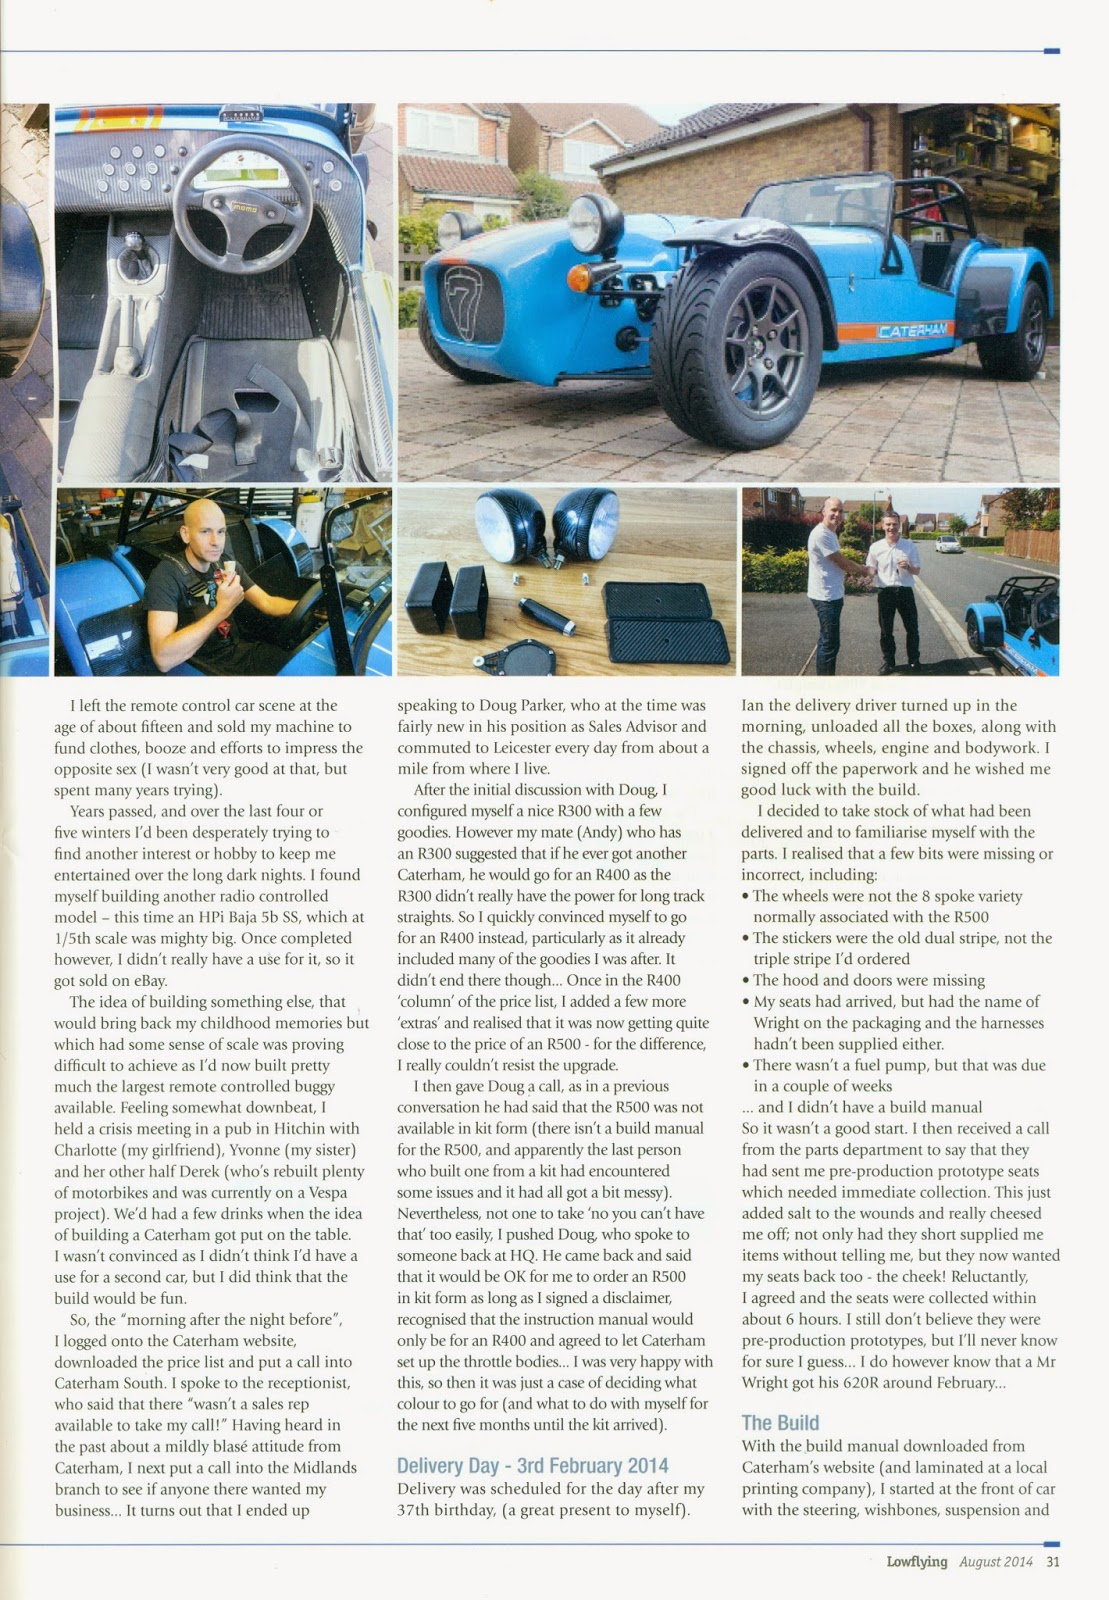 Page 31 of Lowflying Magazine - August 2014 Issue